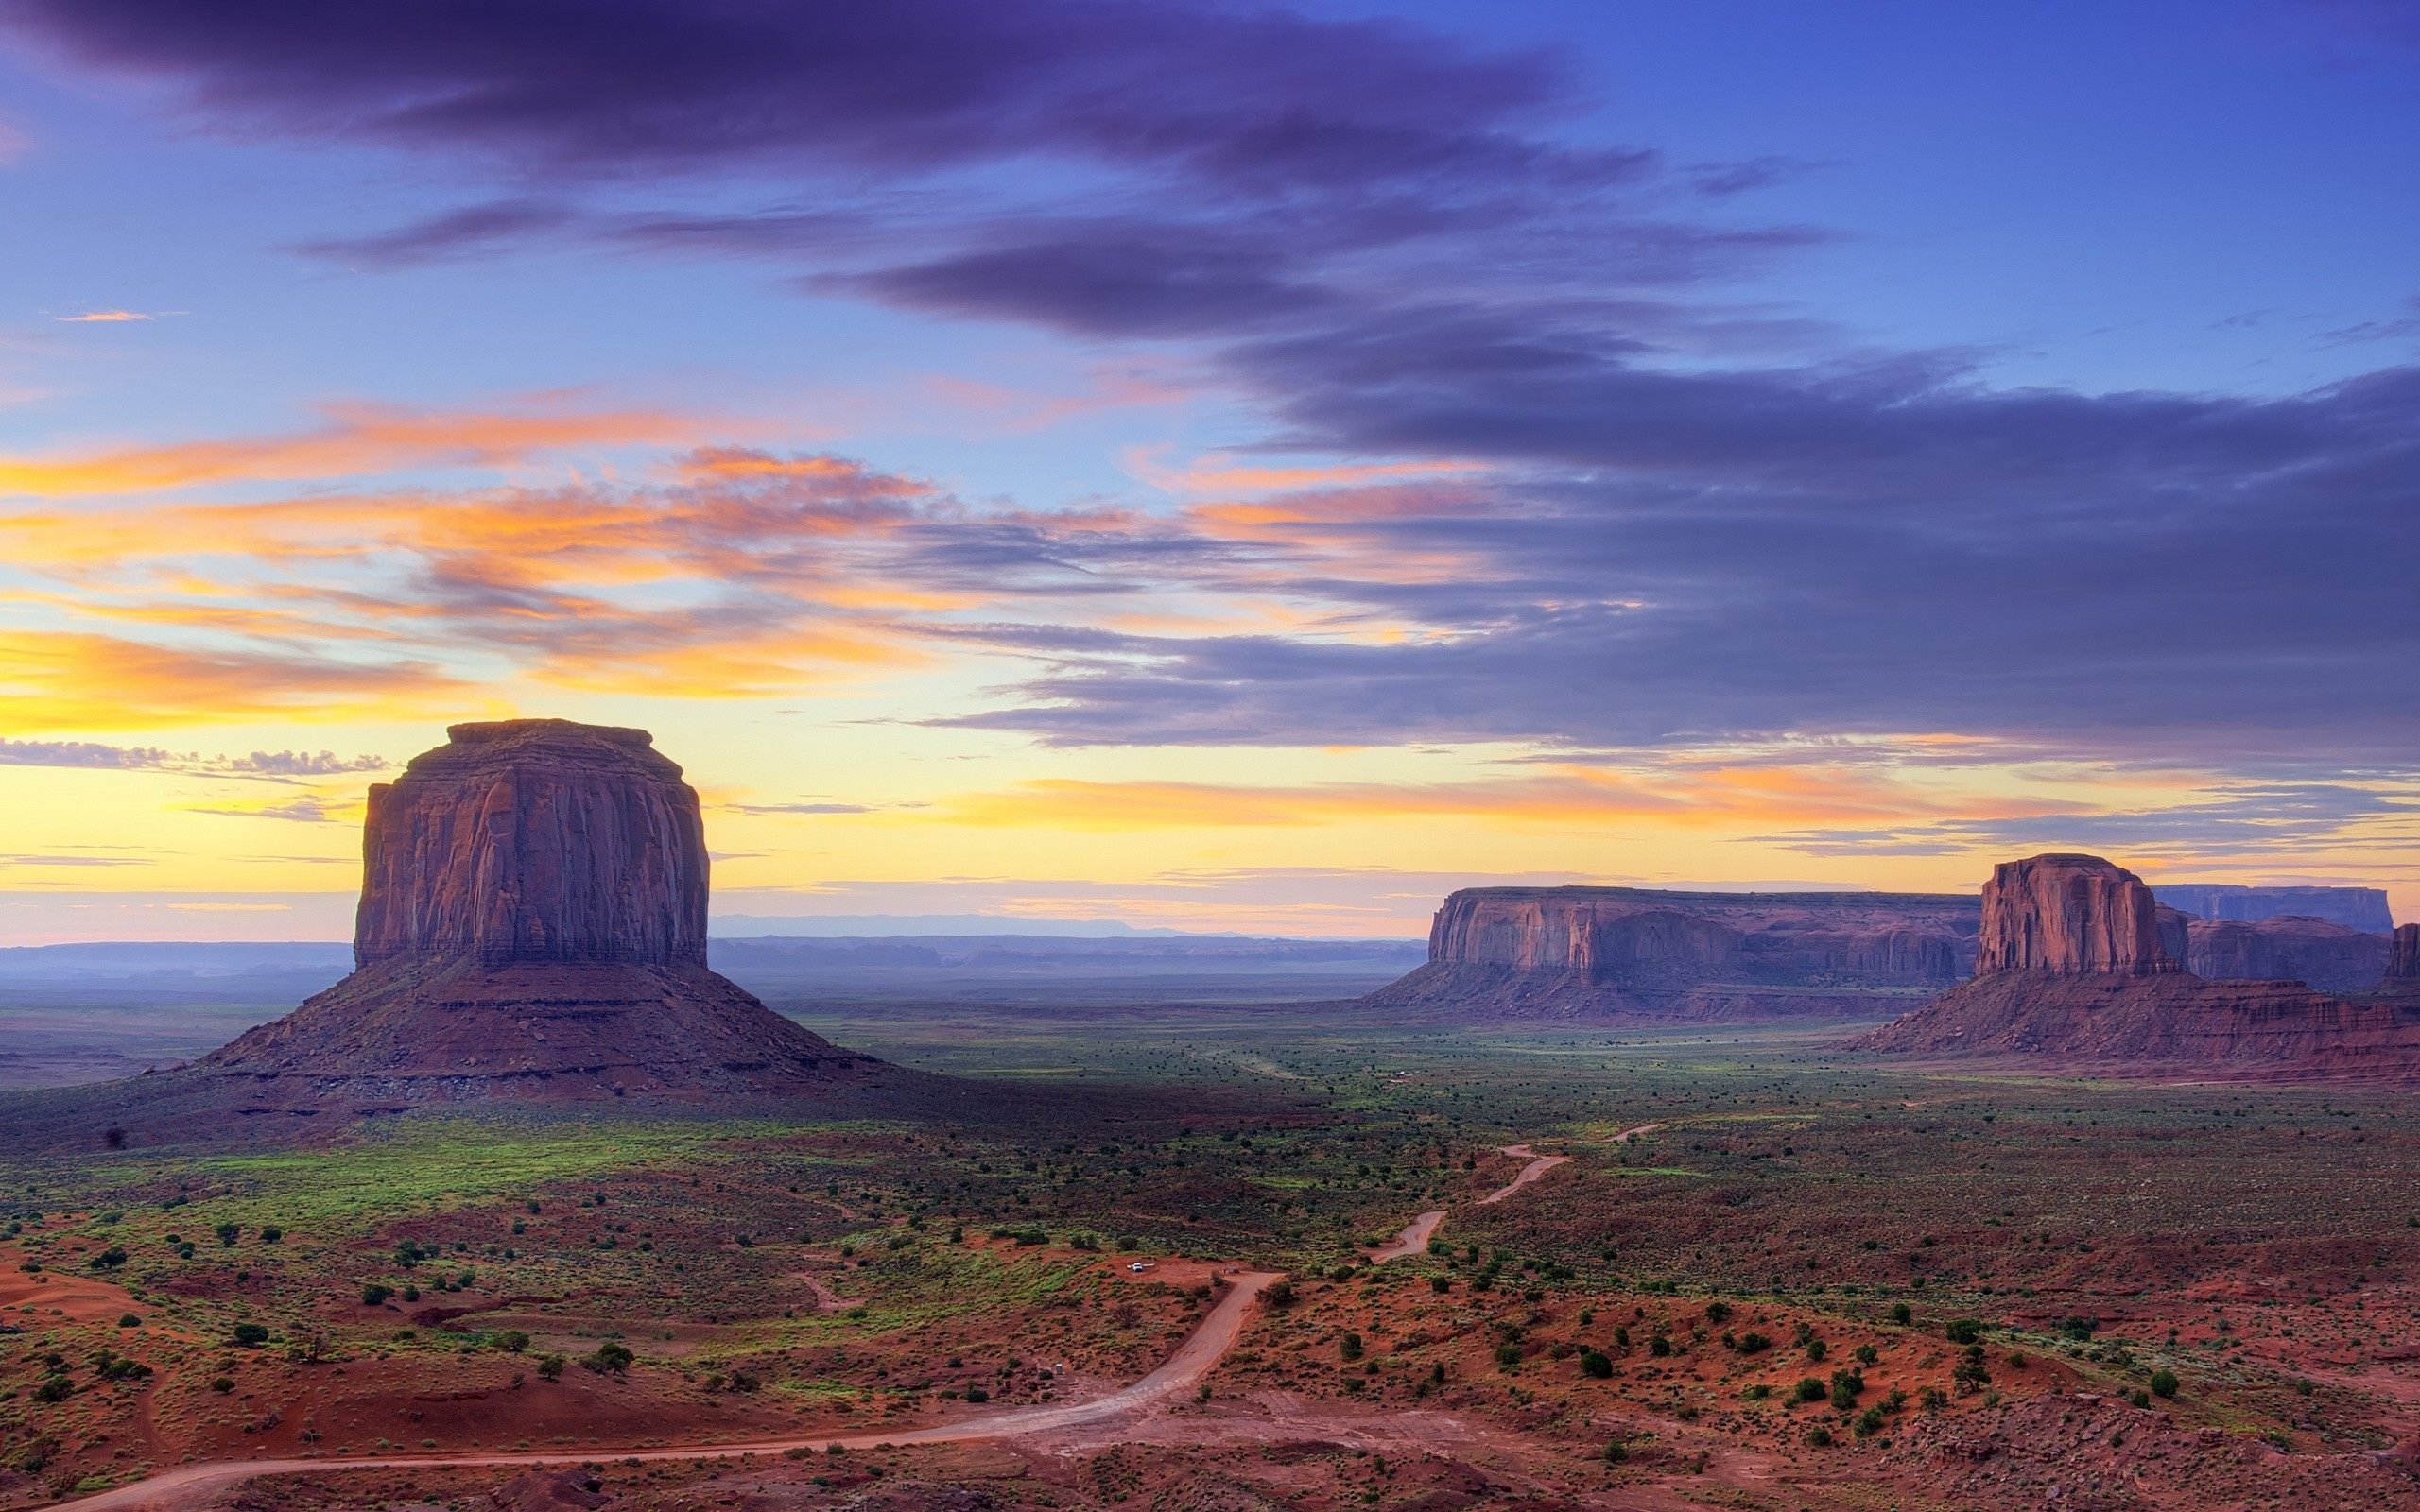 monument valley utah arizona free hd wallpaper hd wallpaper